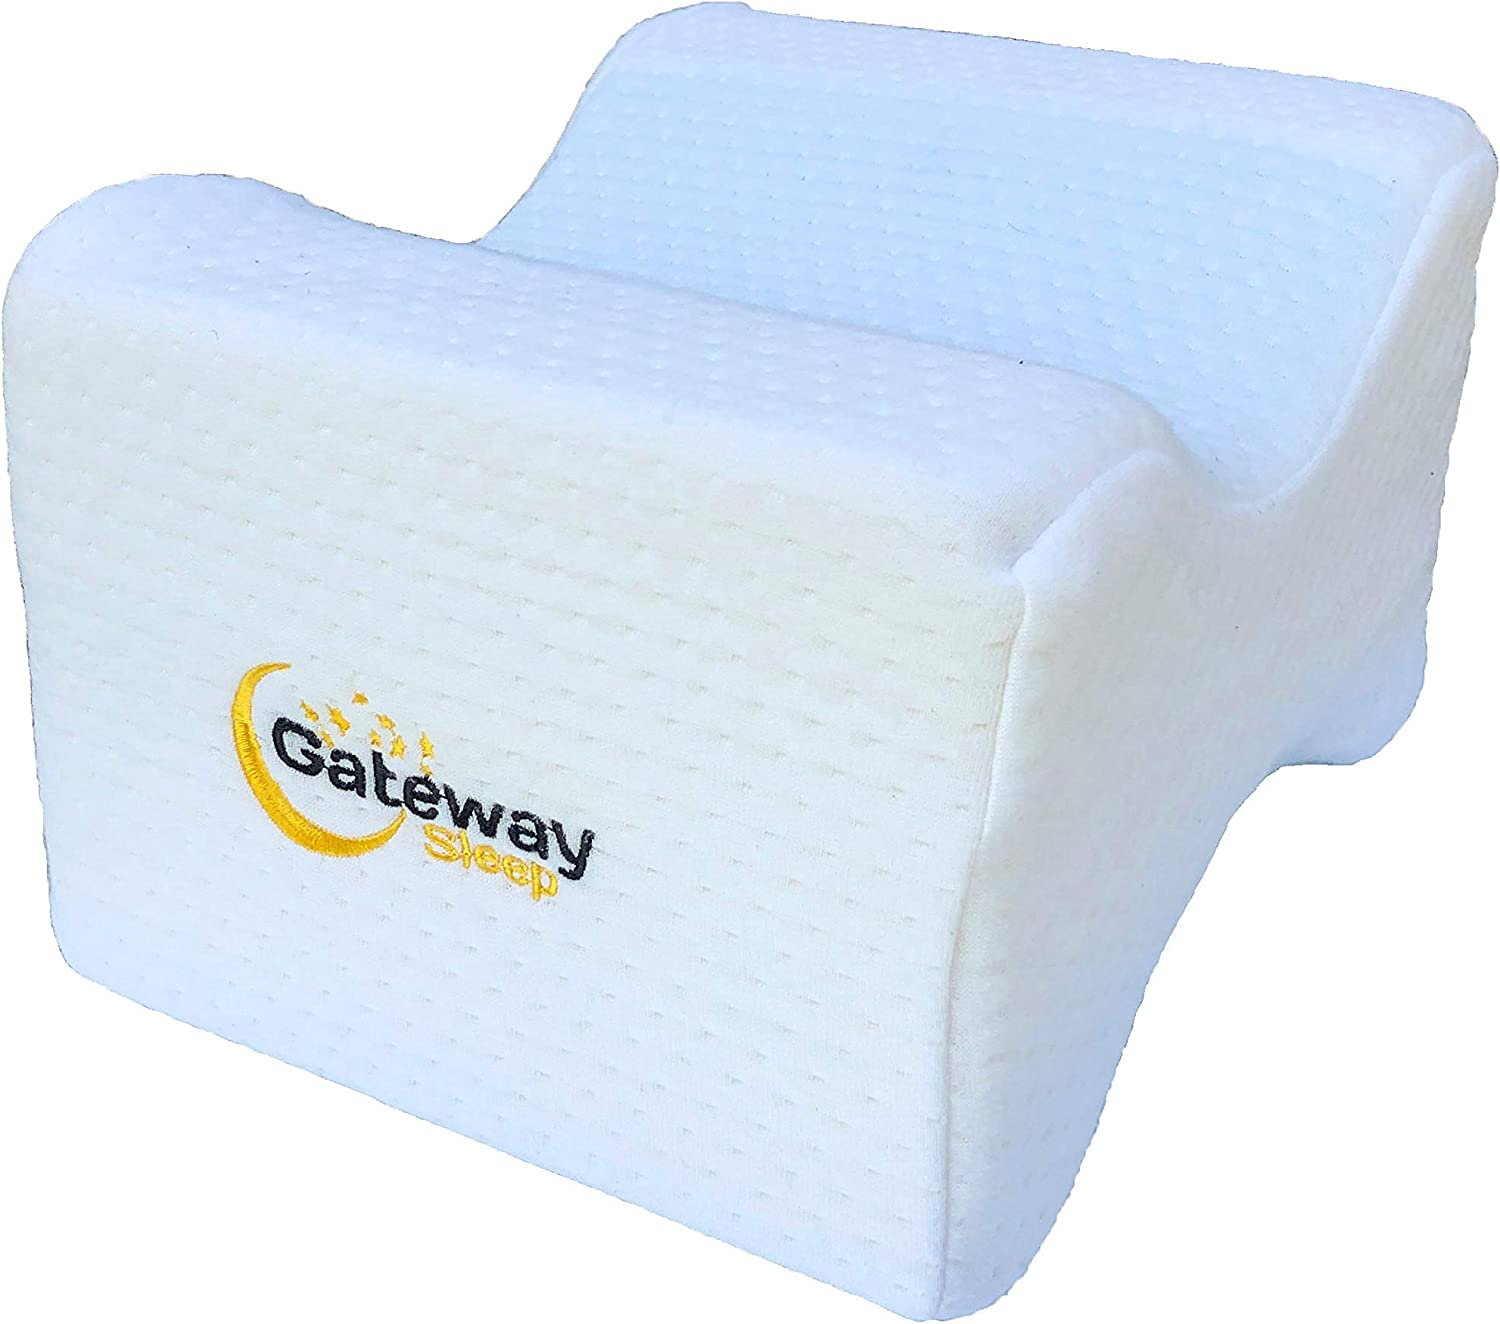 Memory Foam Knee Pillow with Washable Organic Cover for Side Sleepers - Cool Gel Memory Foam Knee Pillow for Back Pain - Post Knee Surgery Pillow - Pregnancy Support for Better Sleep